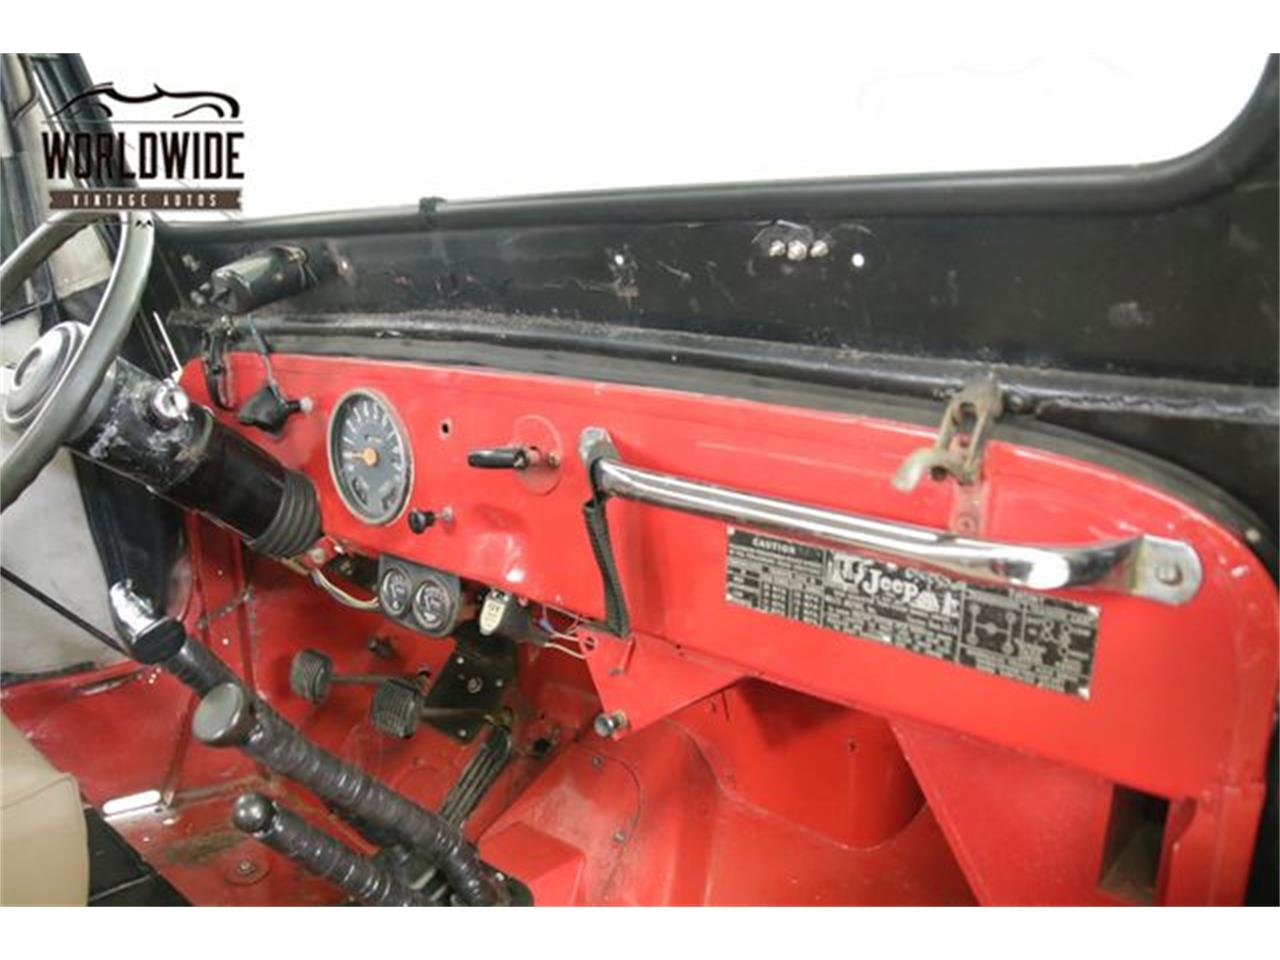 Large Picture of Classic '62 Willys Jeep Offered by Worldwide Vintage Autos - PSGE